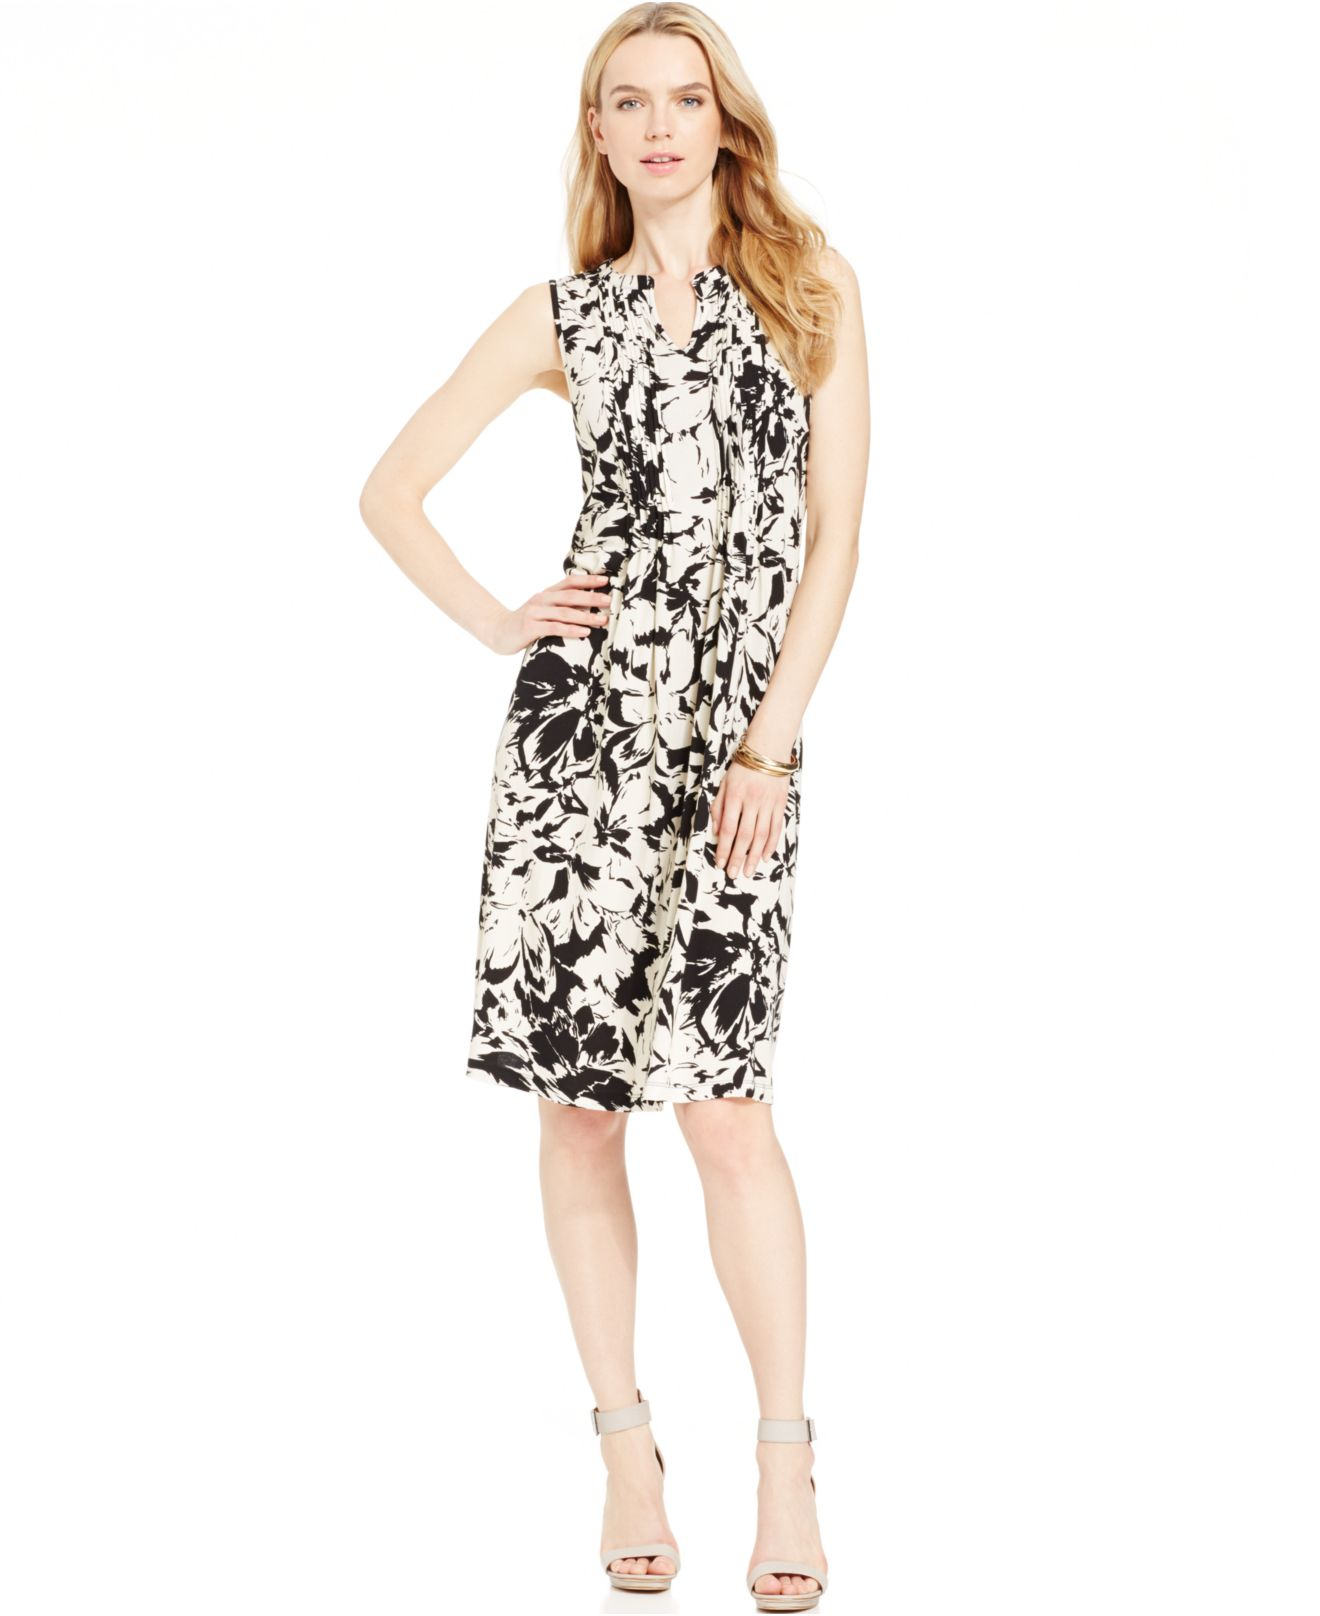 Jones New York Floral Dresses